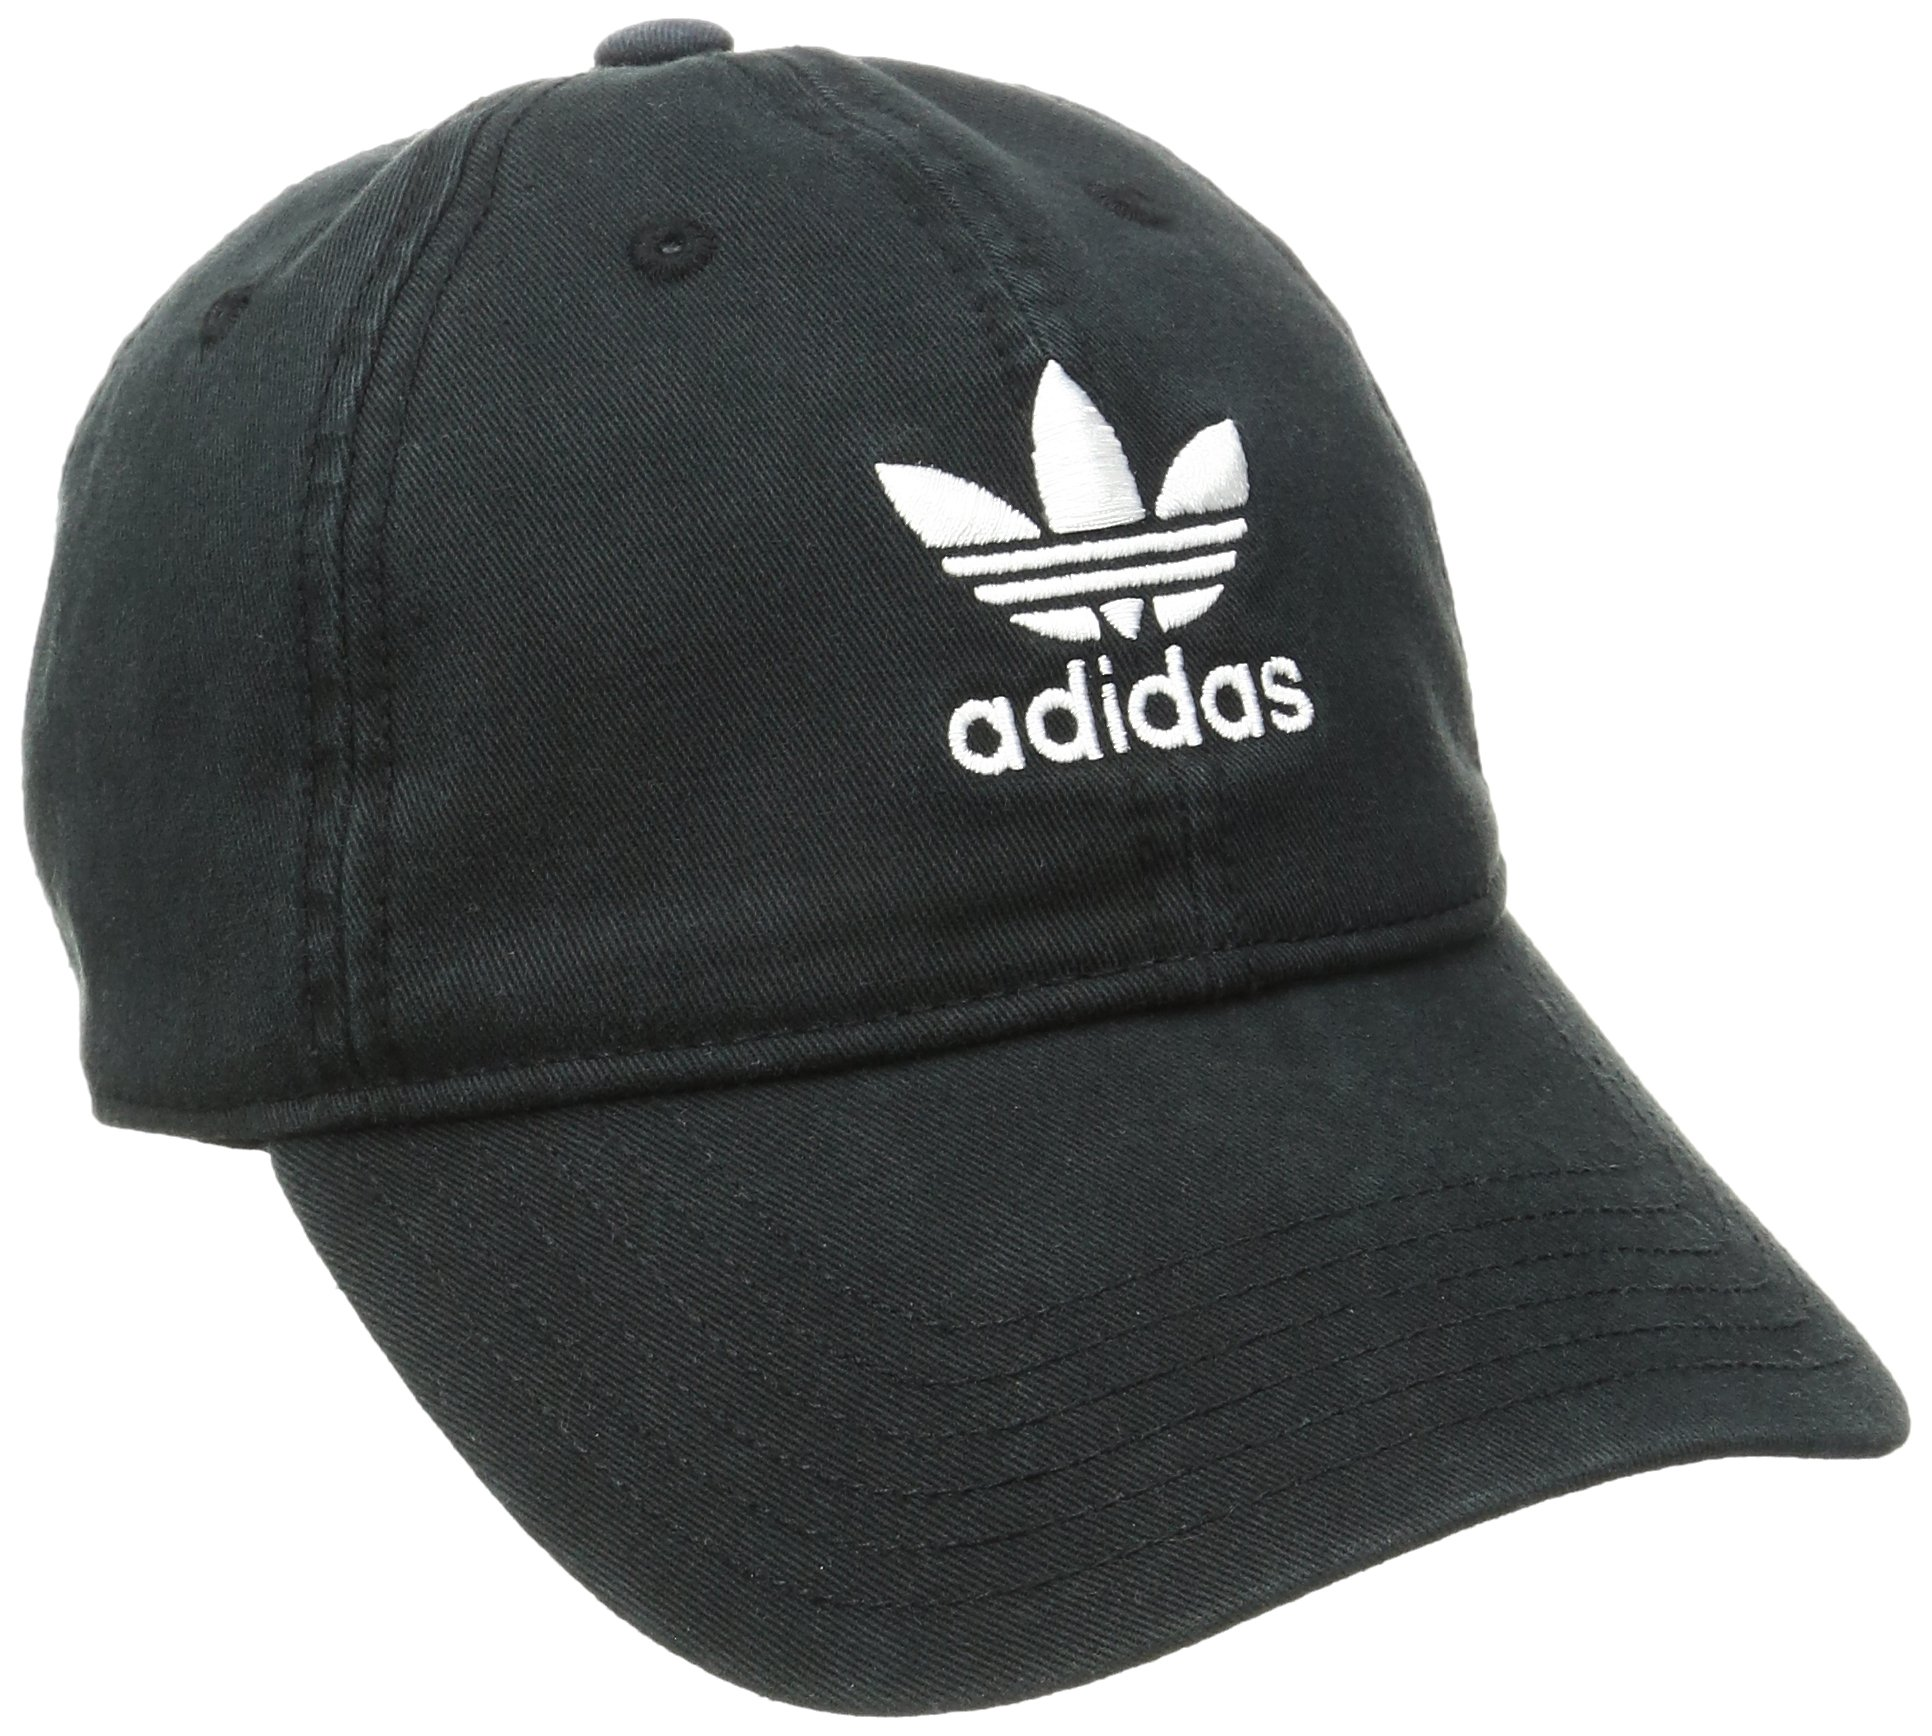 adidas Women's Originals Relaxed Fit Cap, One Size, Black/White by adidas